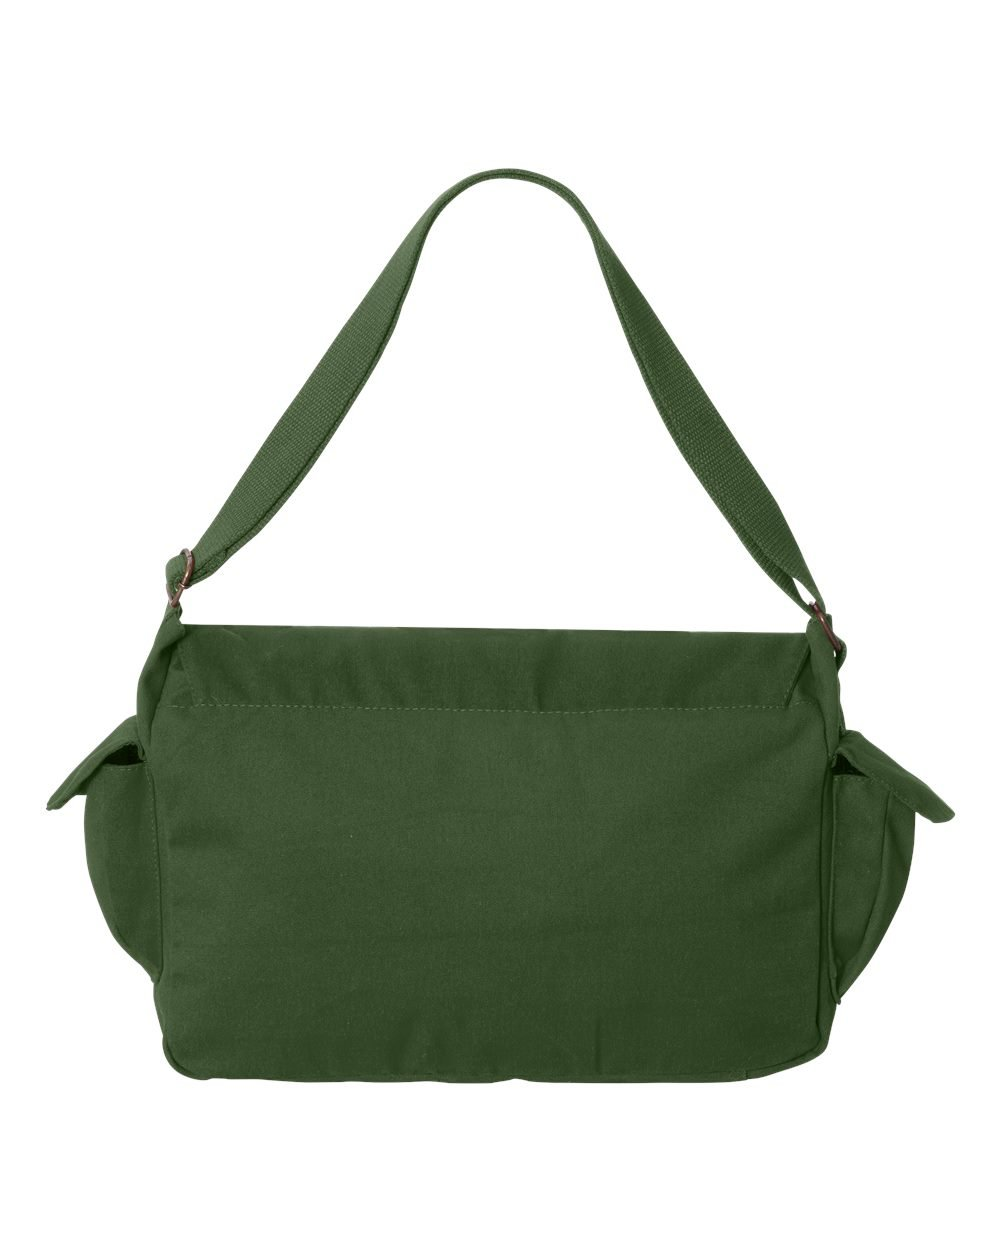 Tenacitee Born in 2002 - Aged Like a Fine Wine Green Brushed Canvas Messenger Bag by Tenacitee (Image #3)